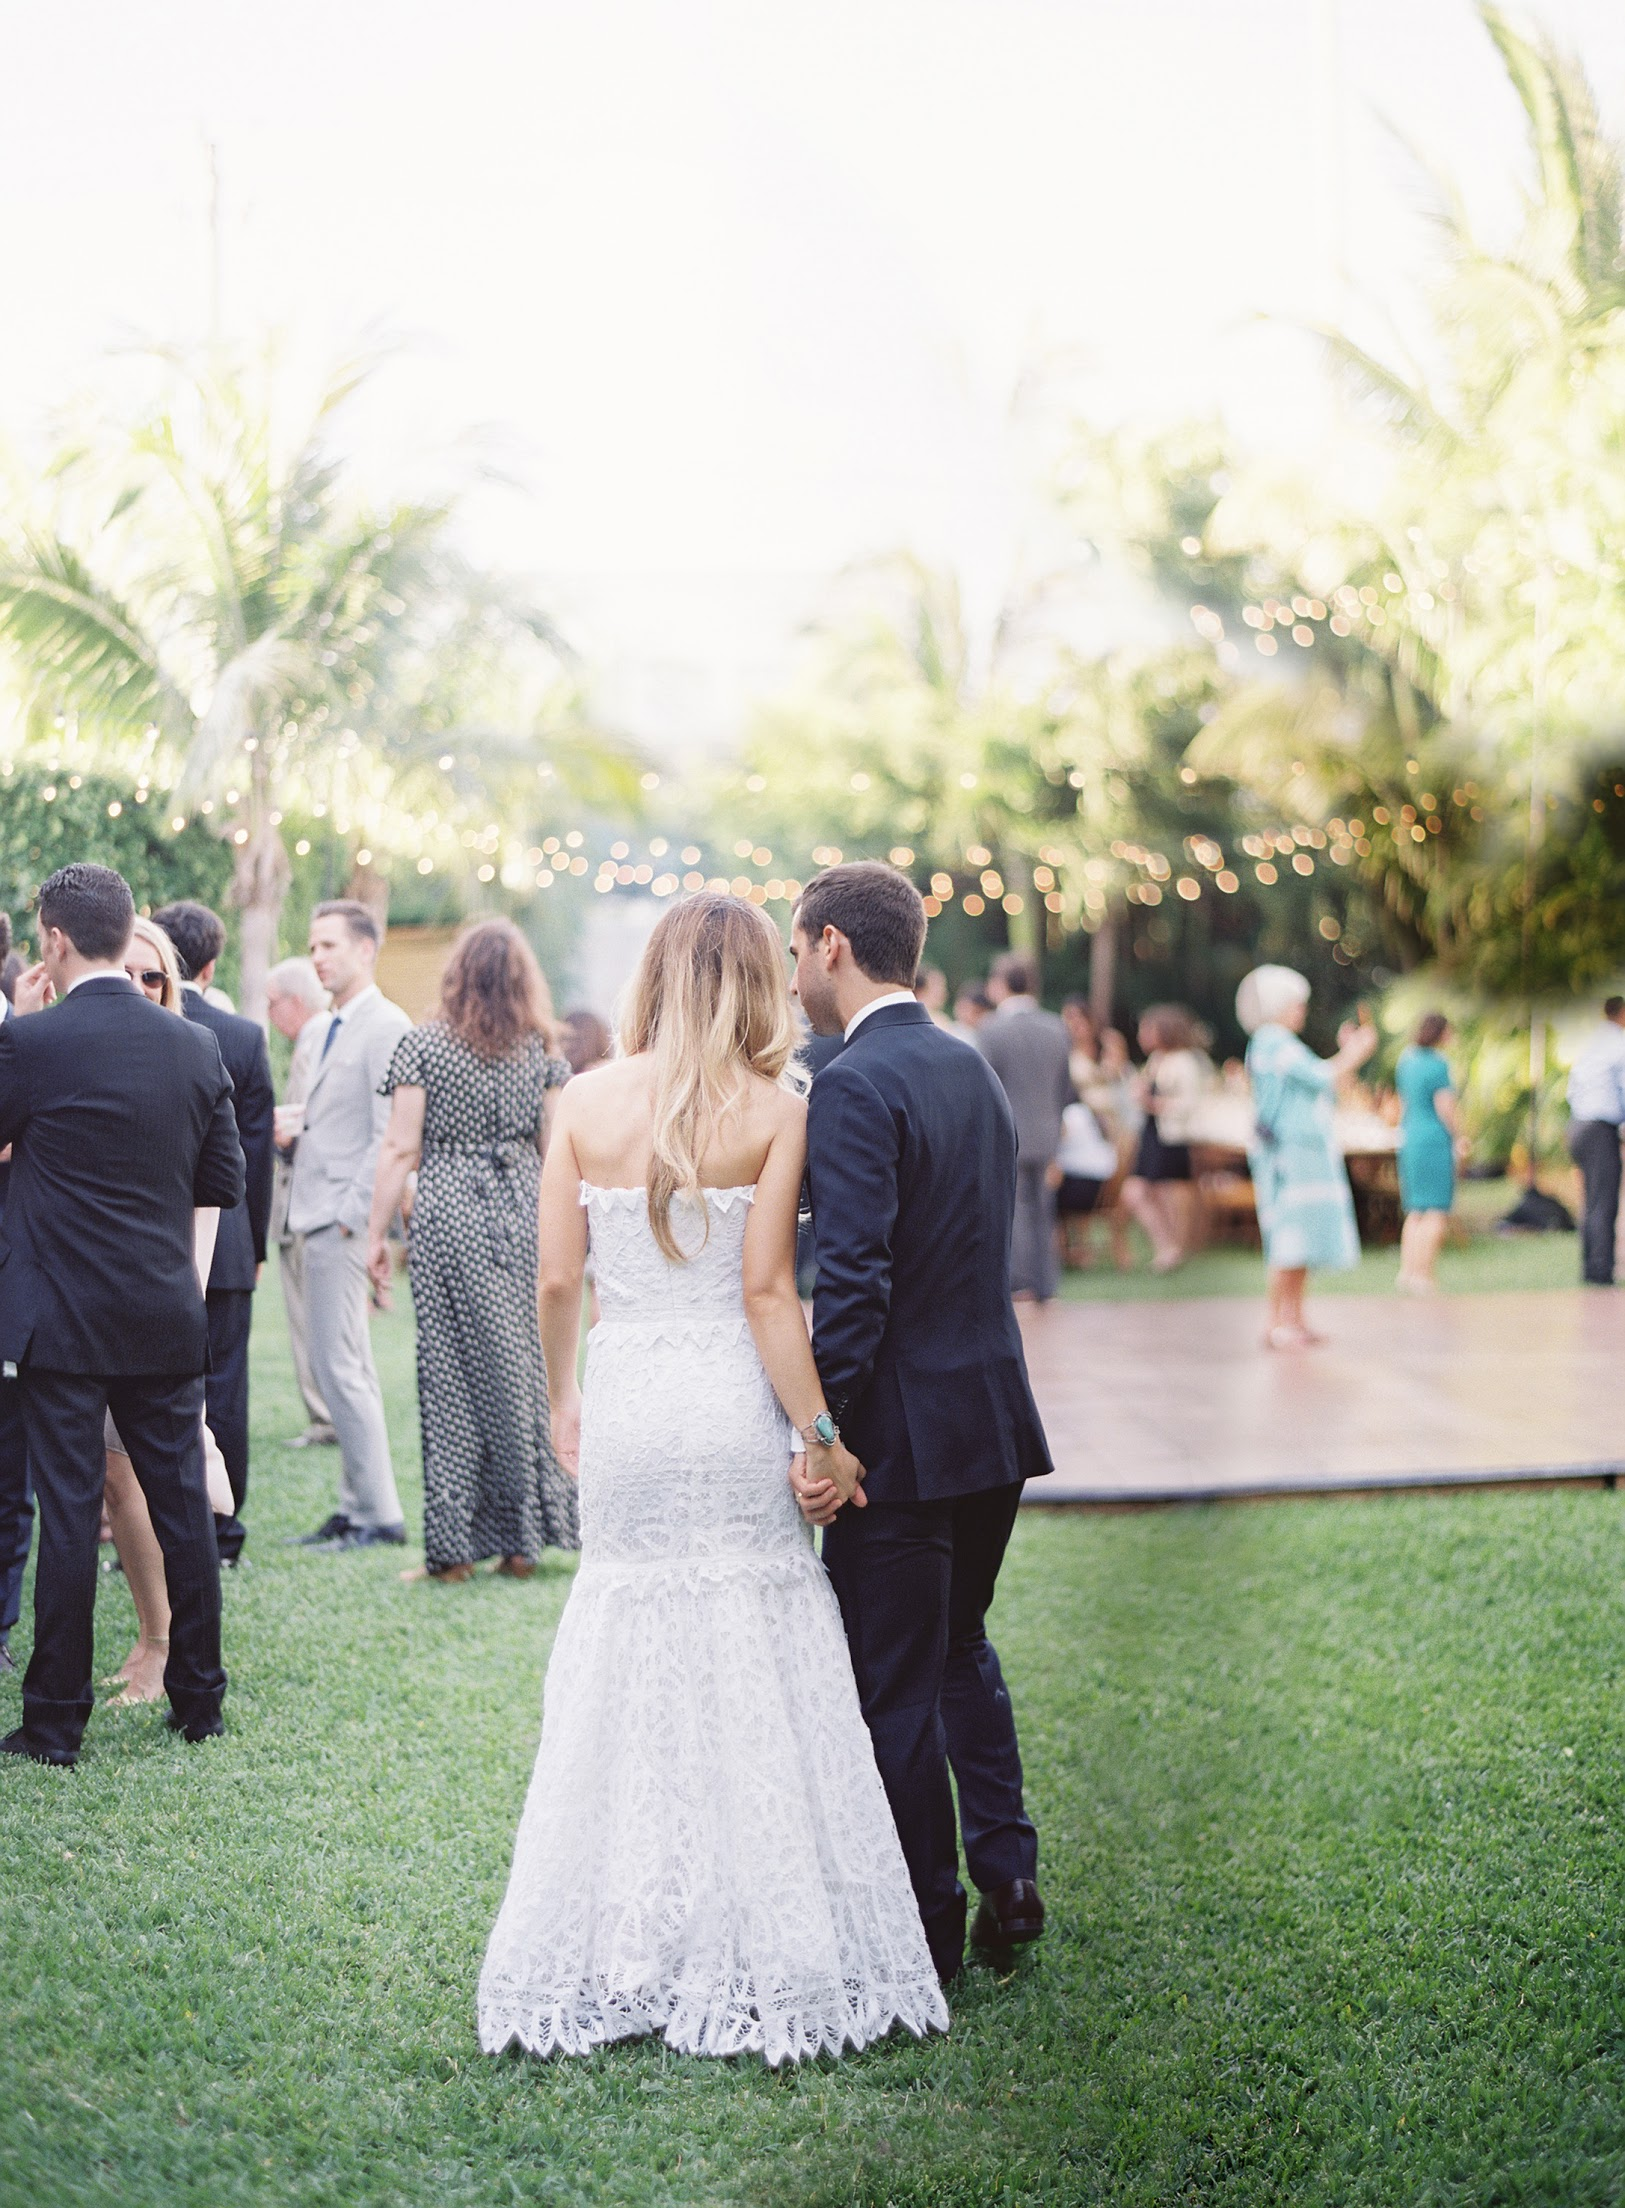 See more of this amazing wedding  here on Style Me Pretty!